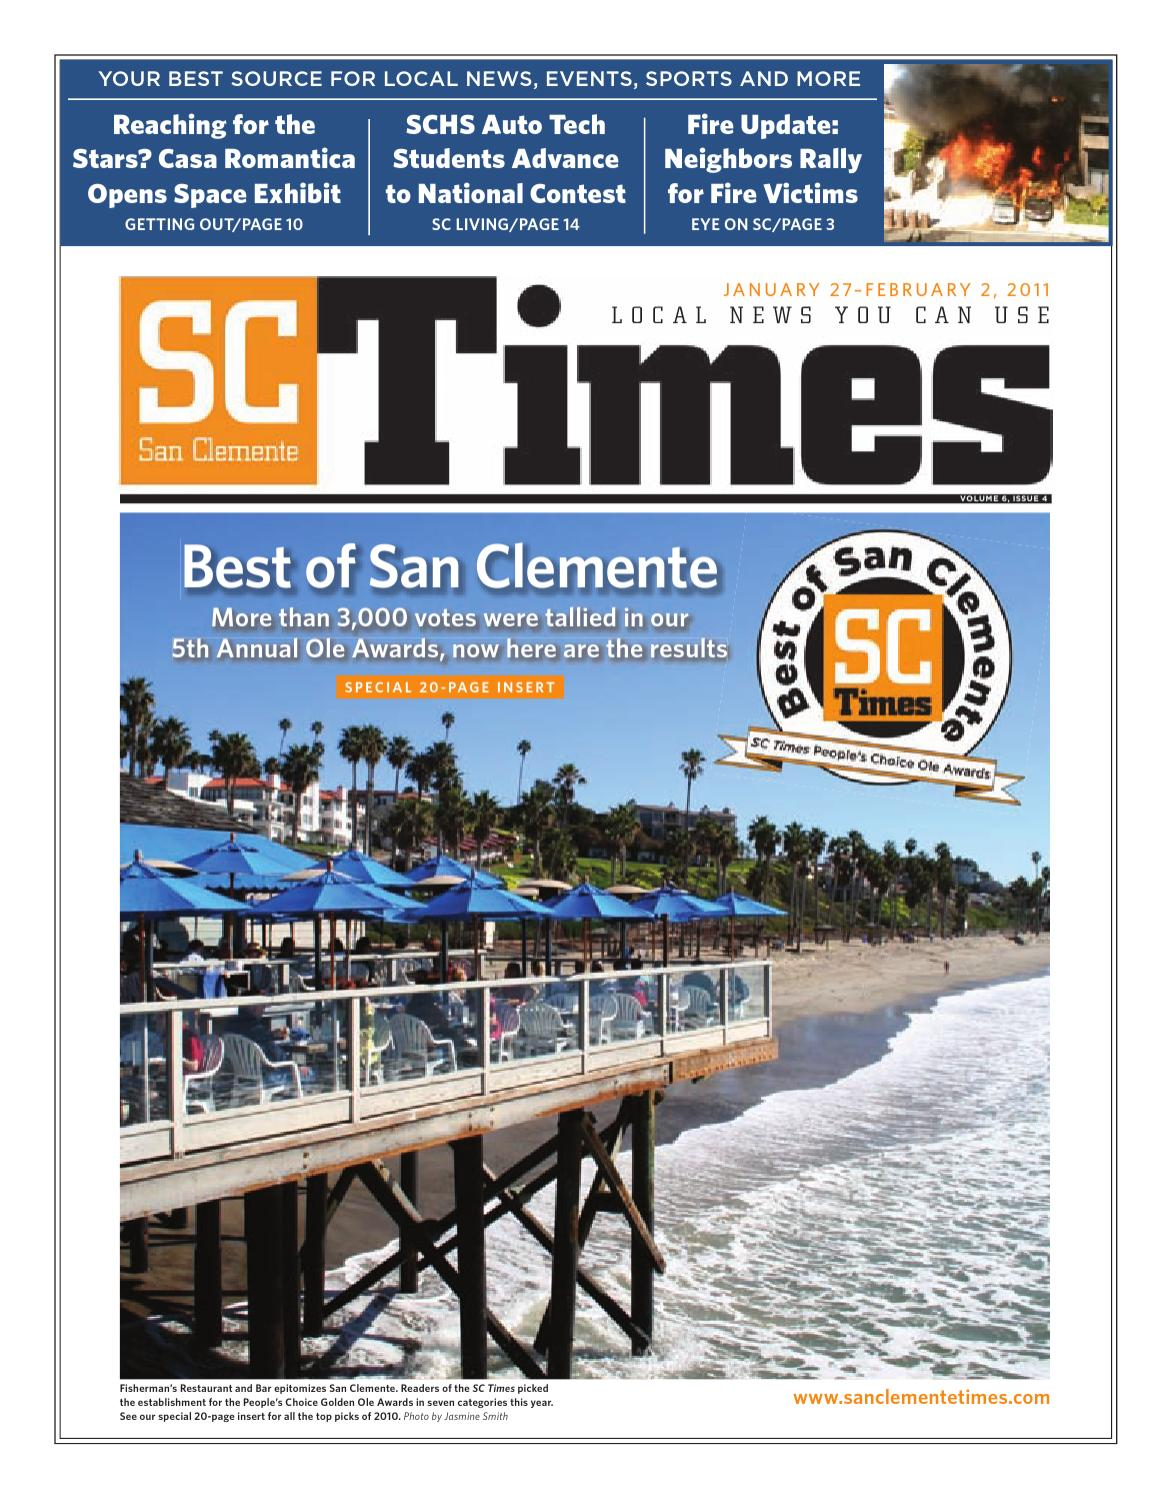 San Clemente Times by San Clemente Times - issuu